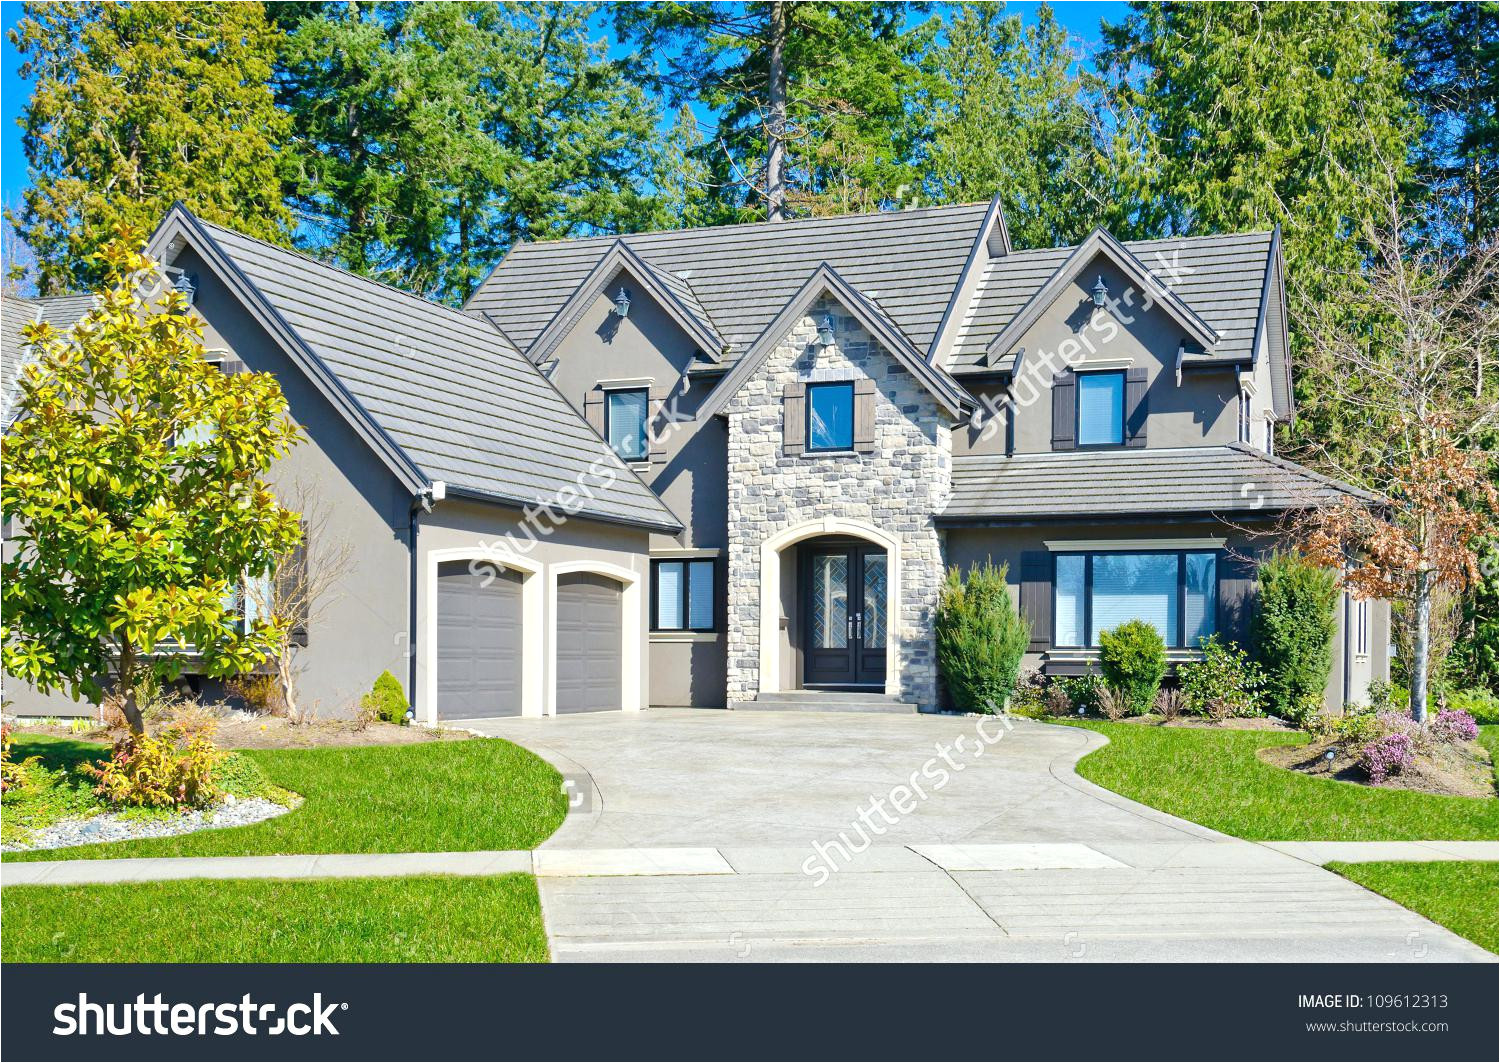 house with big garage